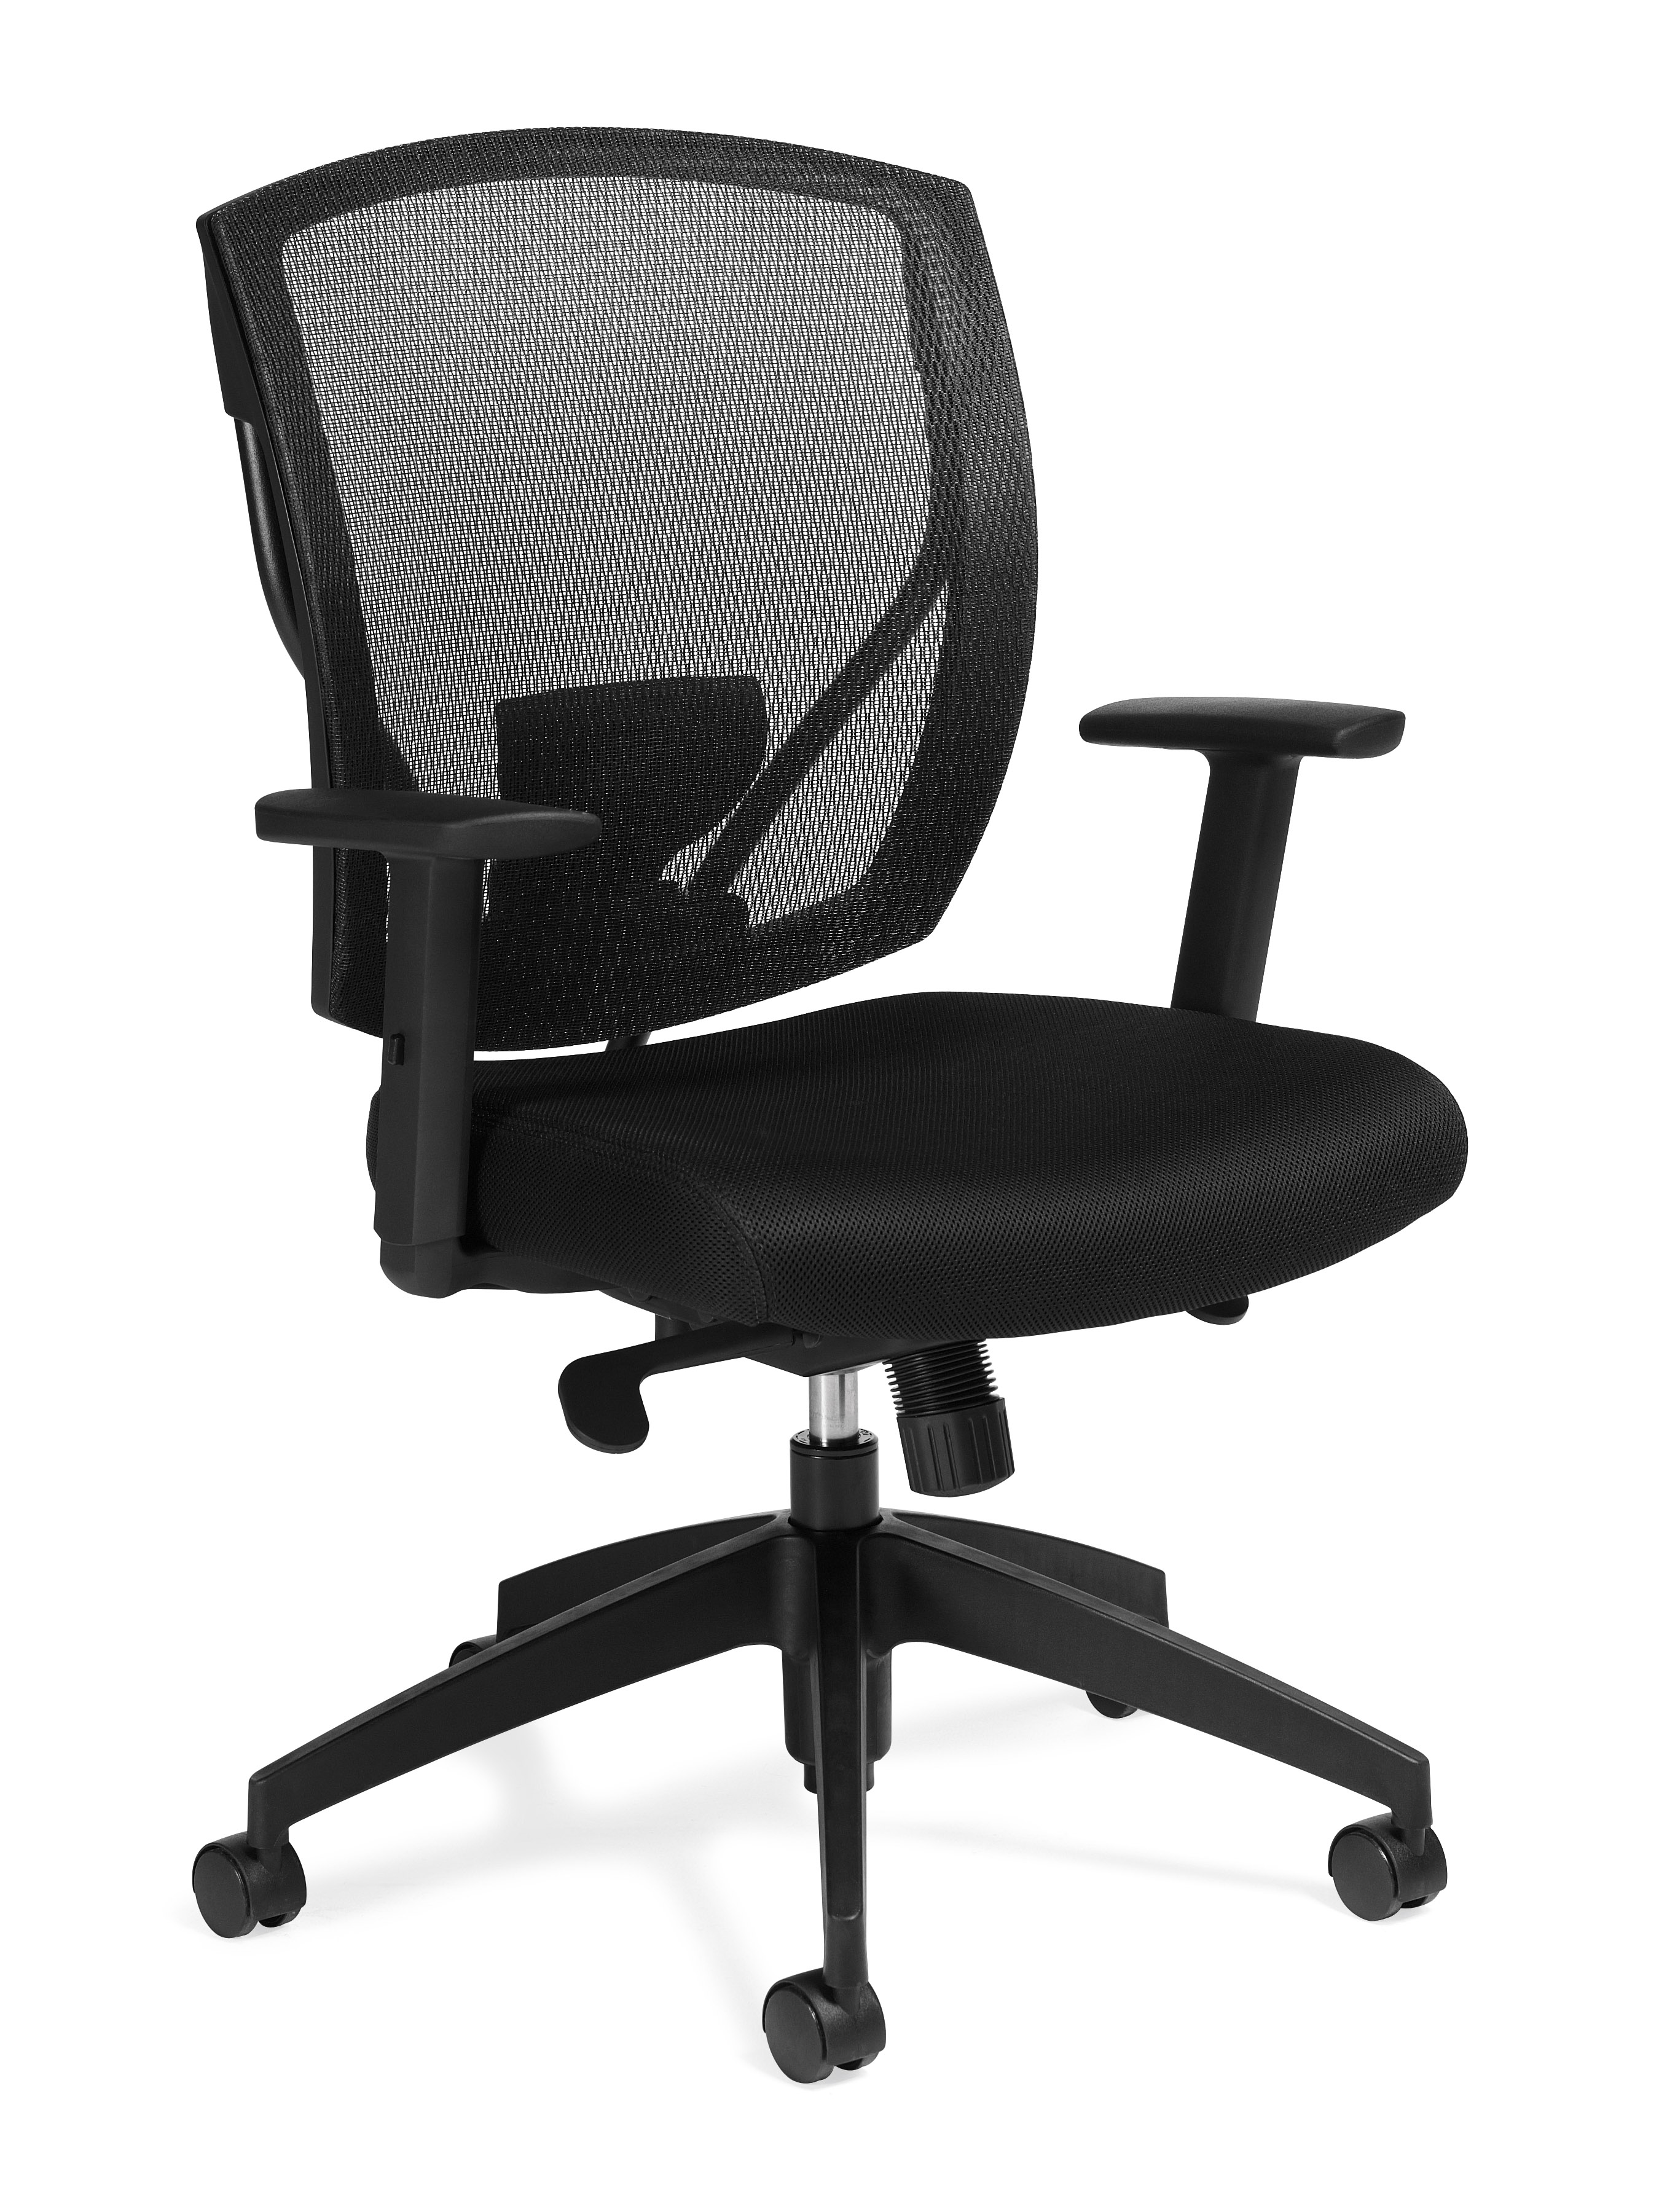 sell office chairs recliner chair for child top selling by cubicles